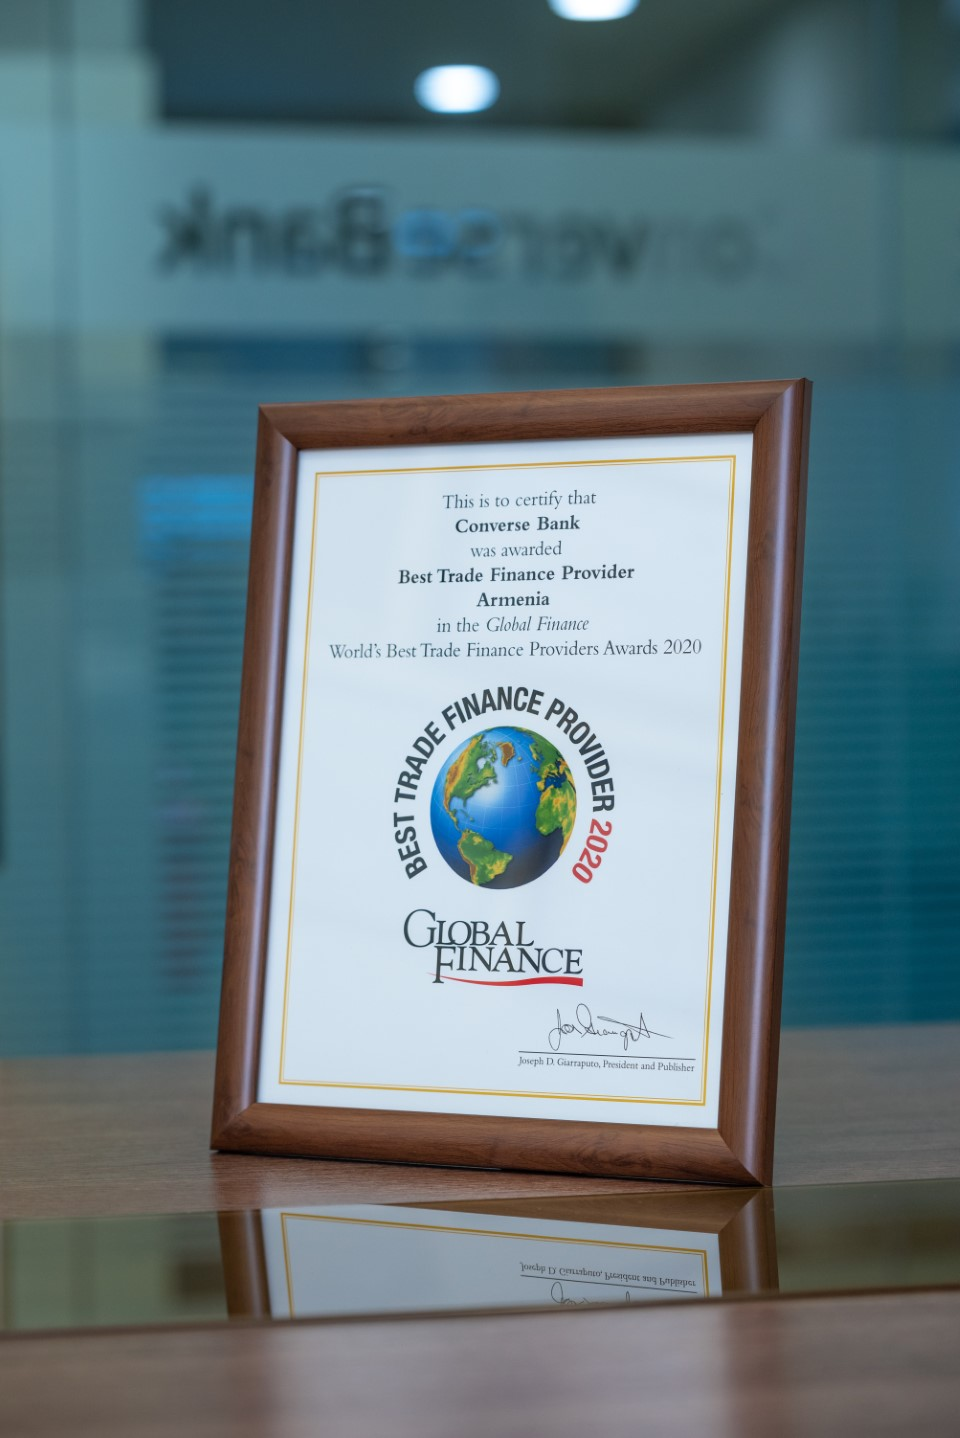 Global Finance recognizes Converse Bank as the Best Trade Finance Provider in Armenia 1